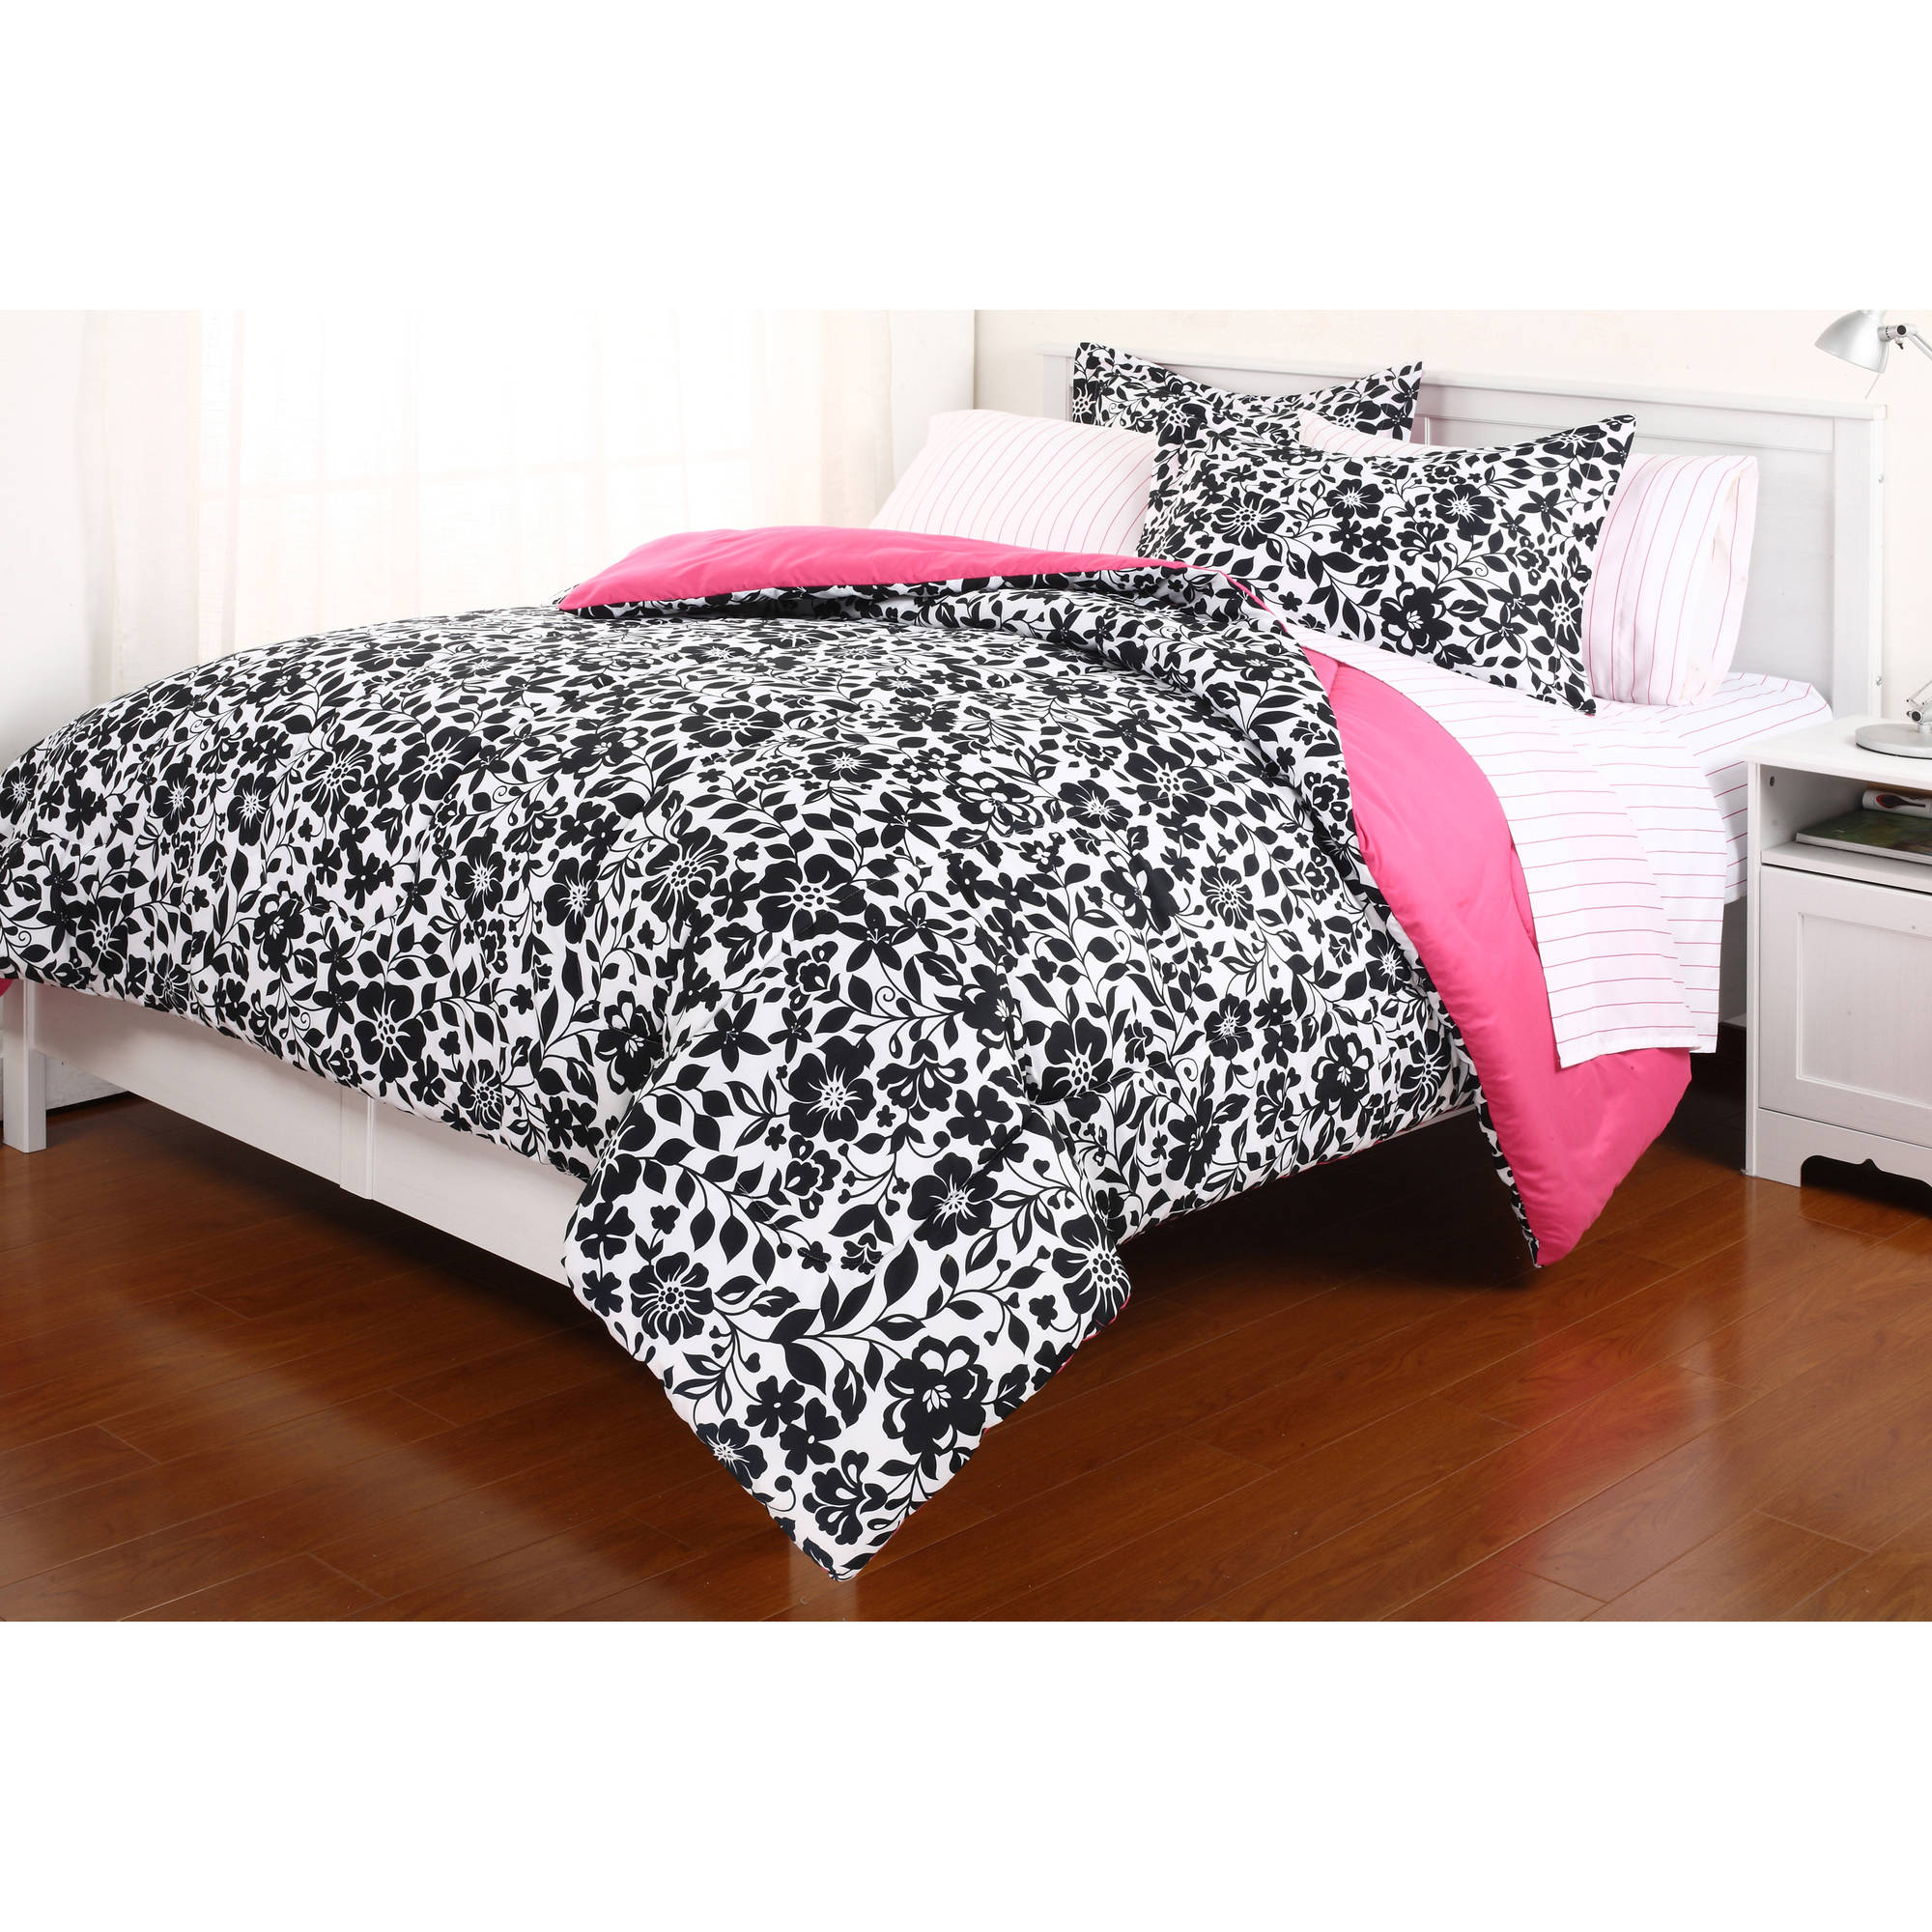 Formula botanica reversible bed in a bag black and white floral formula botanica reversible bed in a bag black and white floral print walmart mightylinksfo